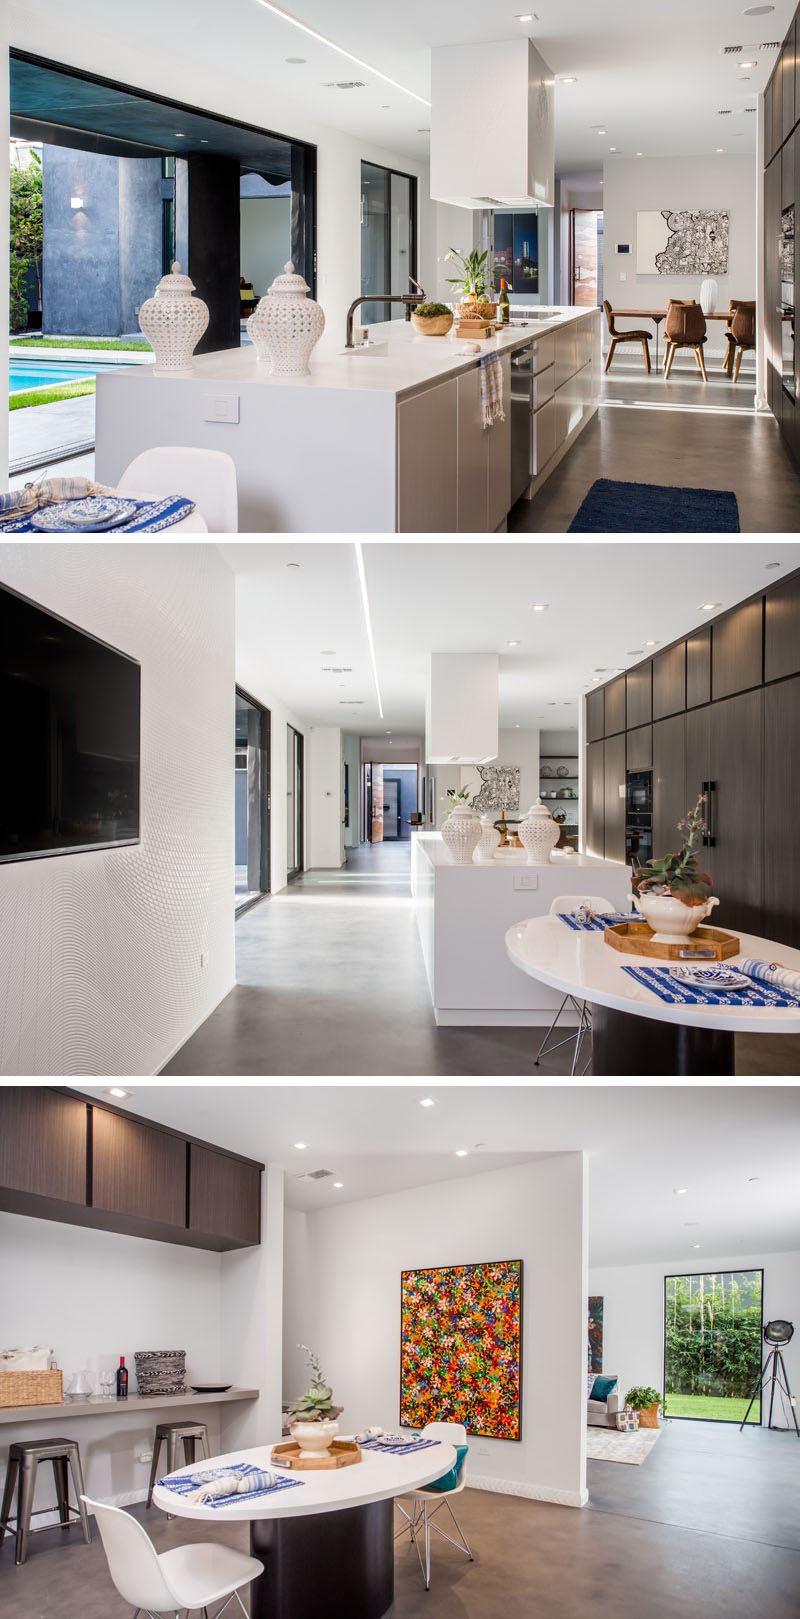 In this modern kitchen, the white kitchen island is a bright contrast to the wall of dark cabinetry behind it. There's also an additional smaller dining area at the end of the kitchen.